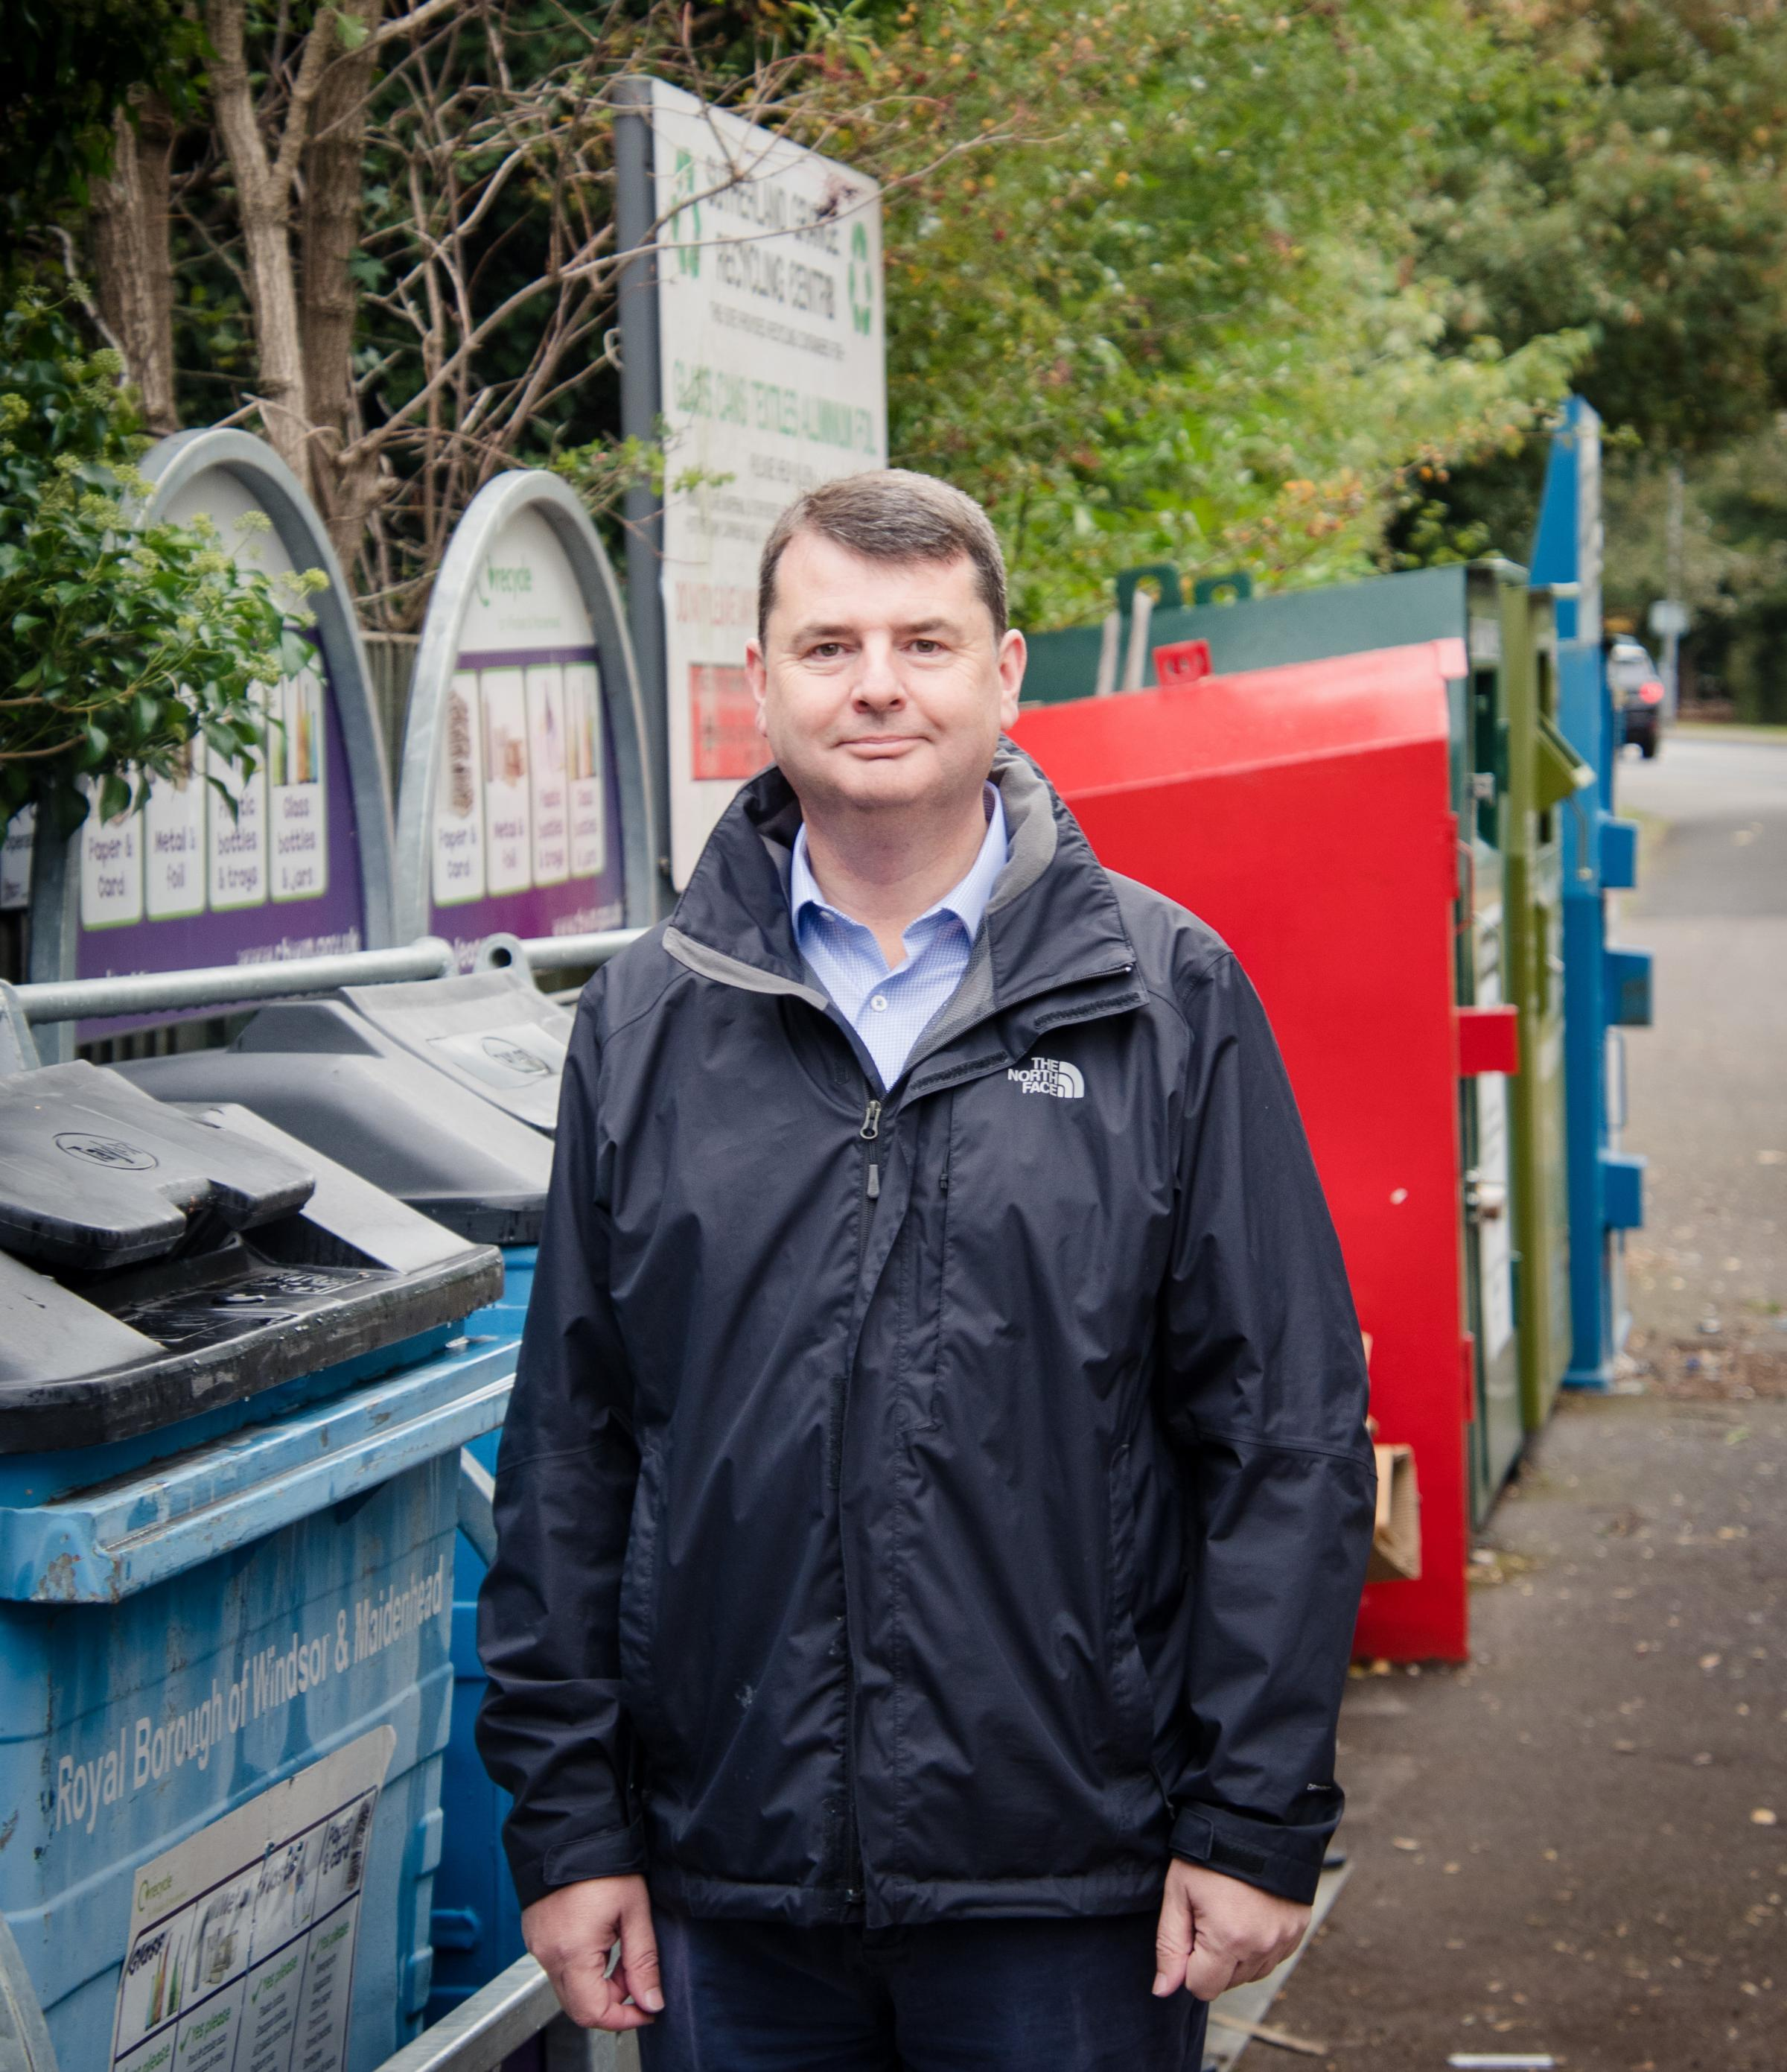 Cllr Wilson mans the new bins